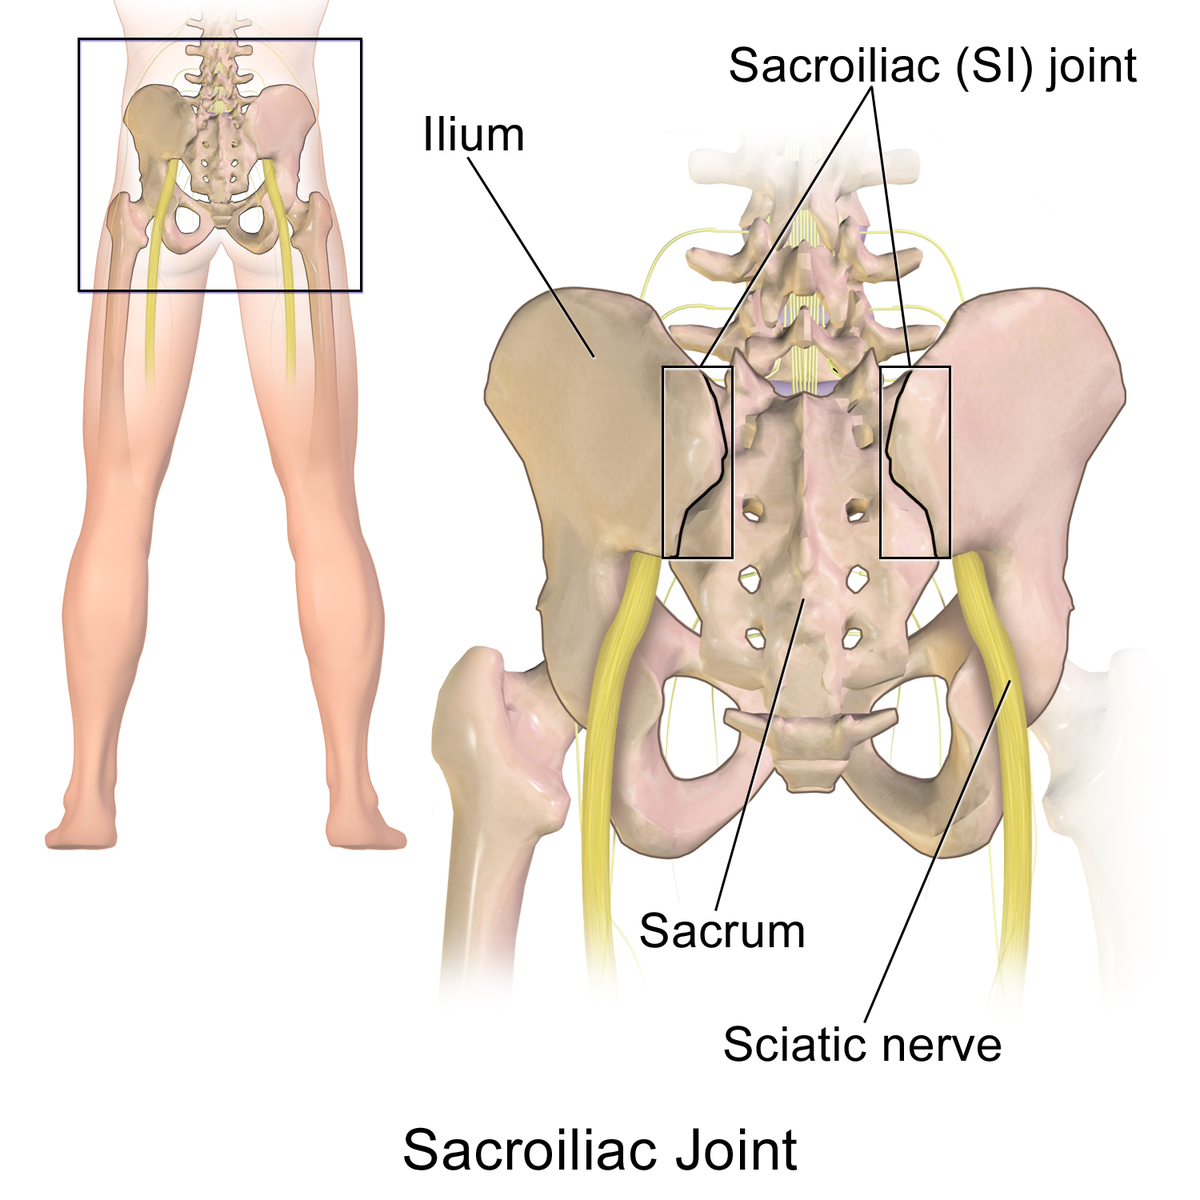 Sacroiliac joint - Wikipedia